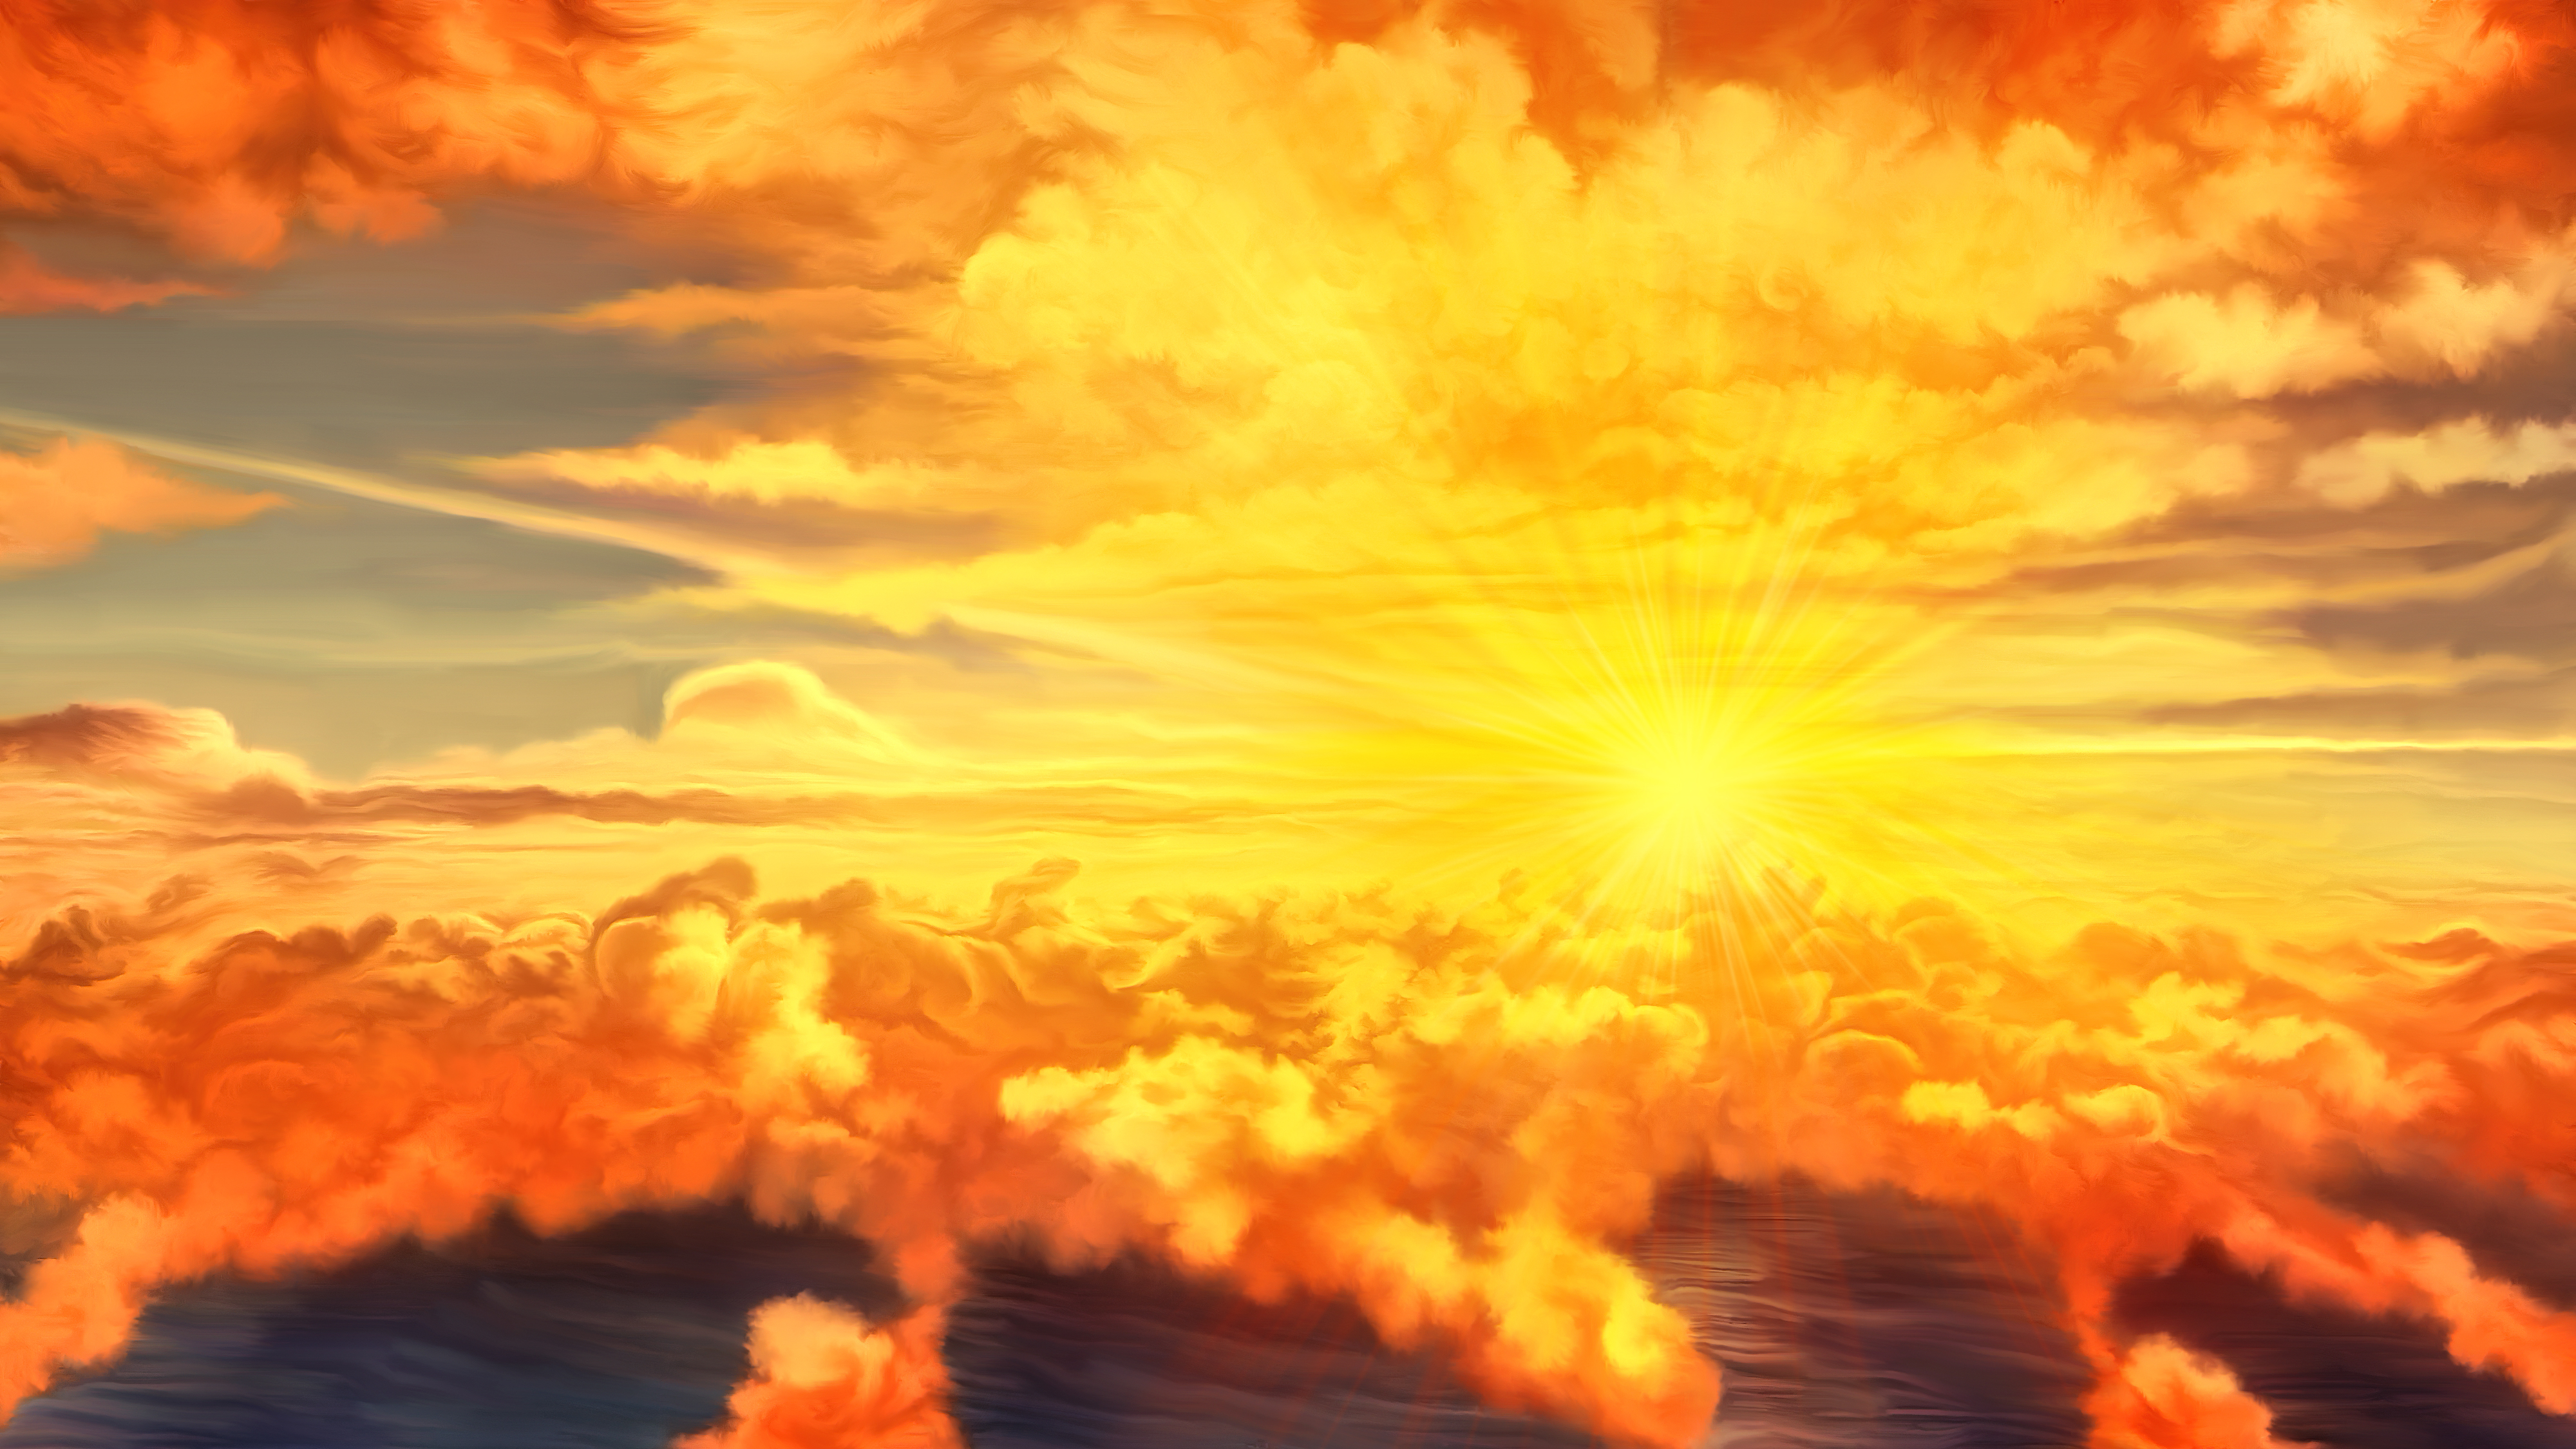 Sunset over the sea by exobiology